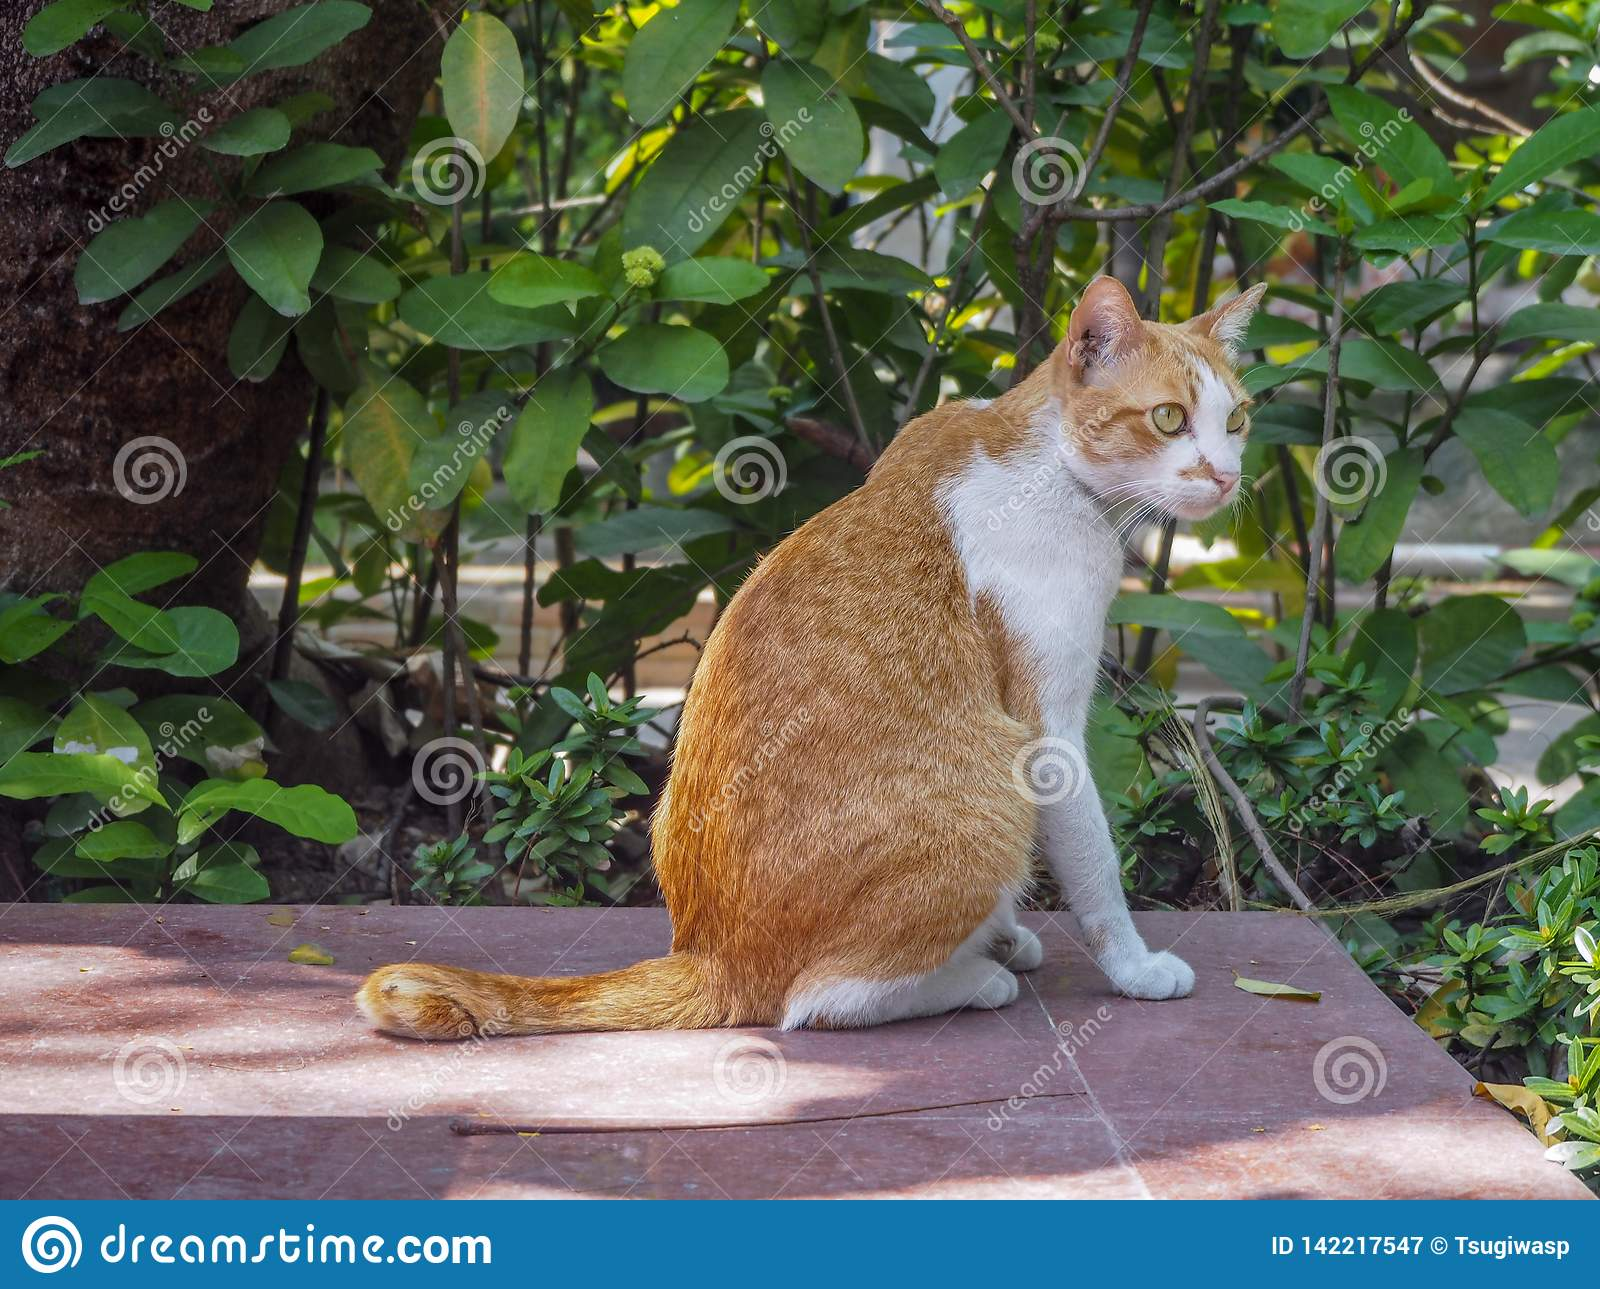 Cute cat sitting on the tile floor with leaves background